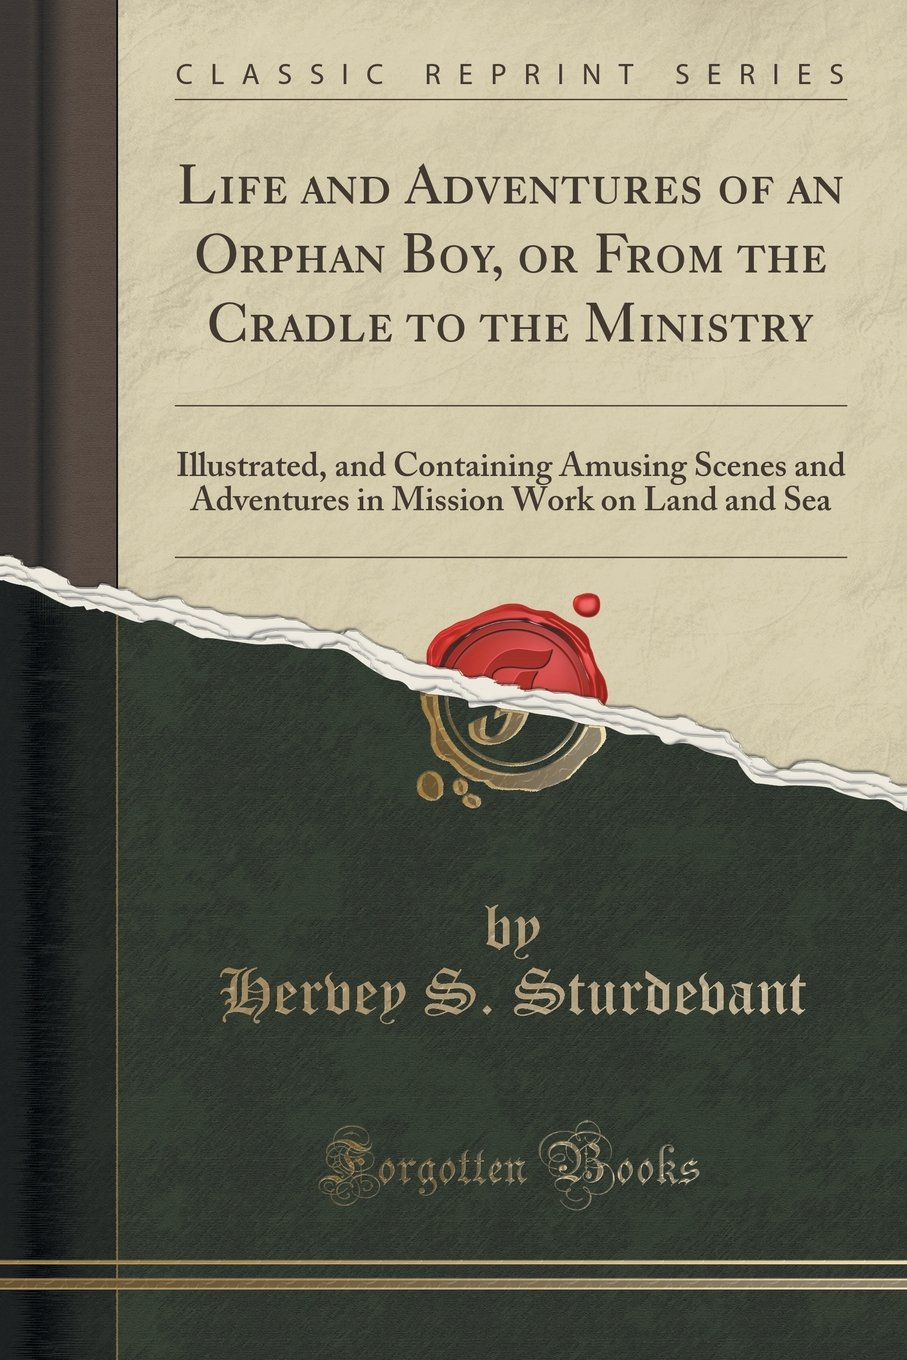 Download Life and Adventures of an Orphan Boy, or From the Cradle to the Ministry: Illustrated, and Containing Amusing Scenes and Adventures in Mission Work on Land and Sea (Classic Reprint) ebook